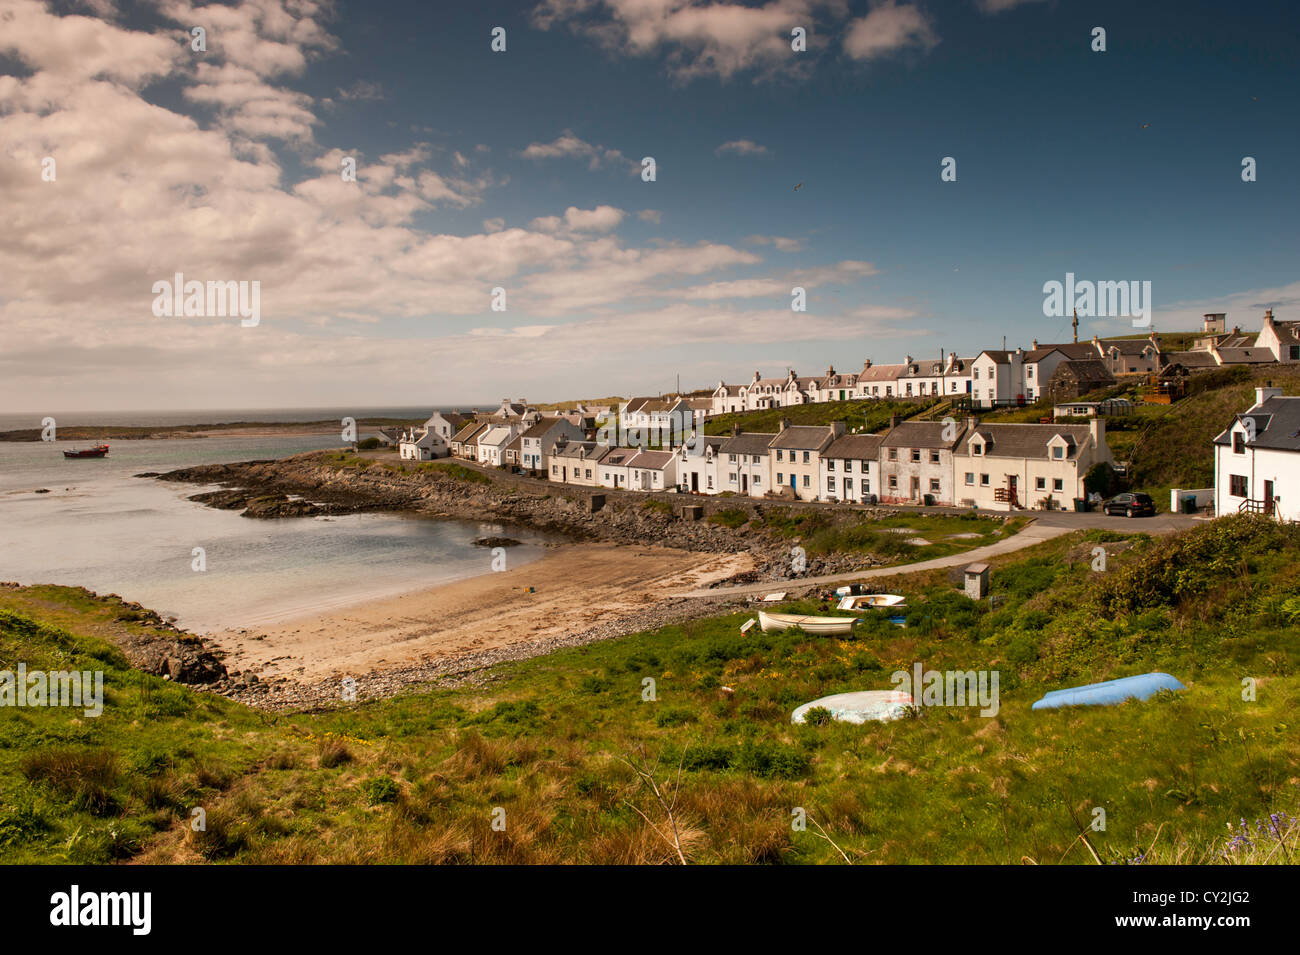 Elevated view of Portnahaven harbour and houses, Islay Scotland. - Stock Image